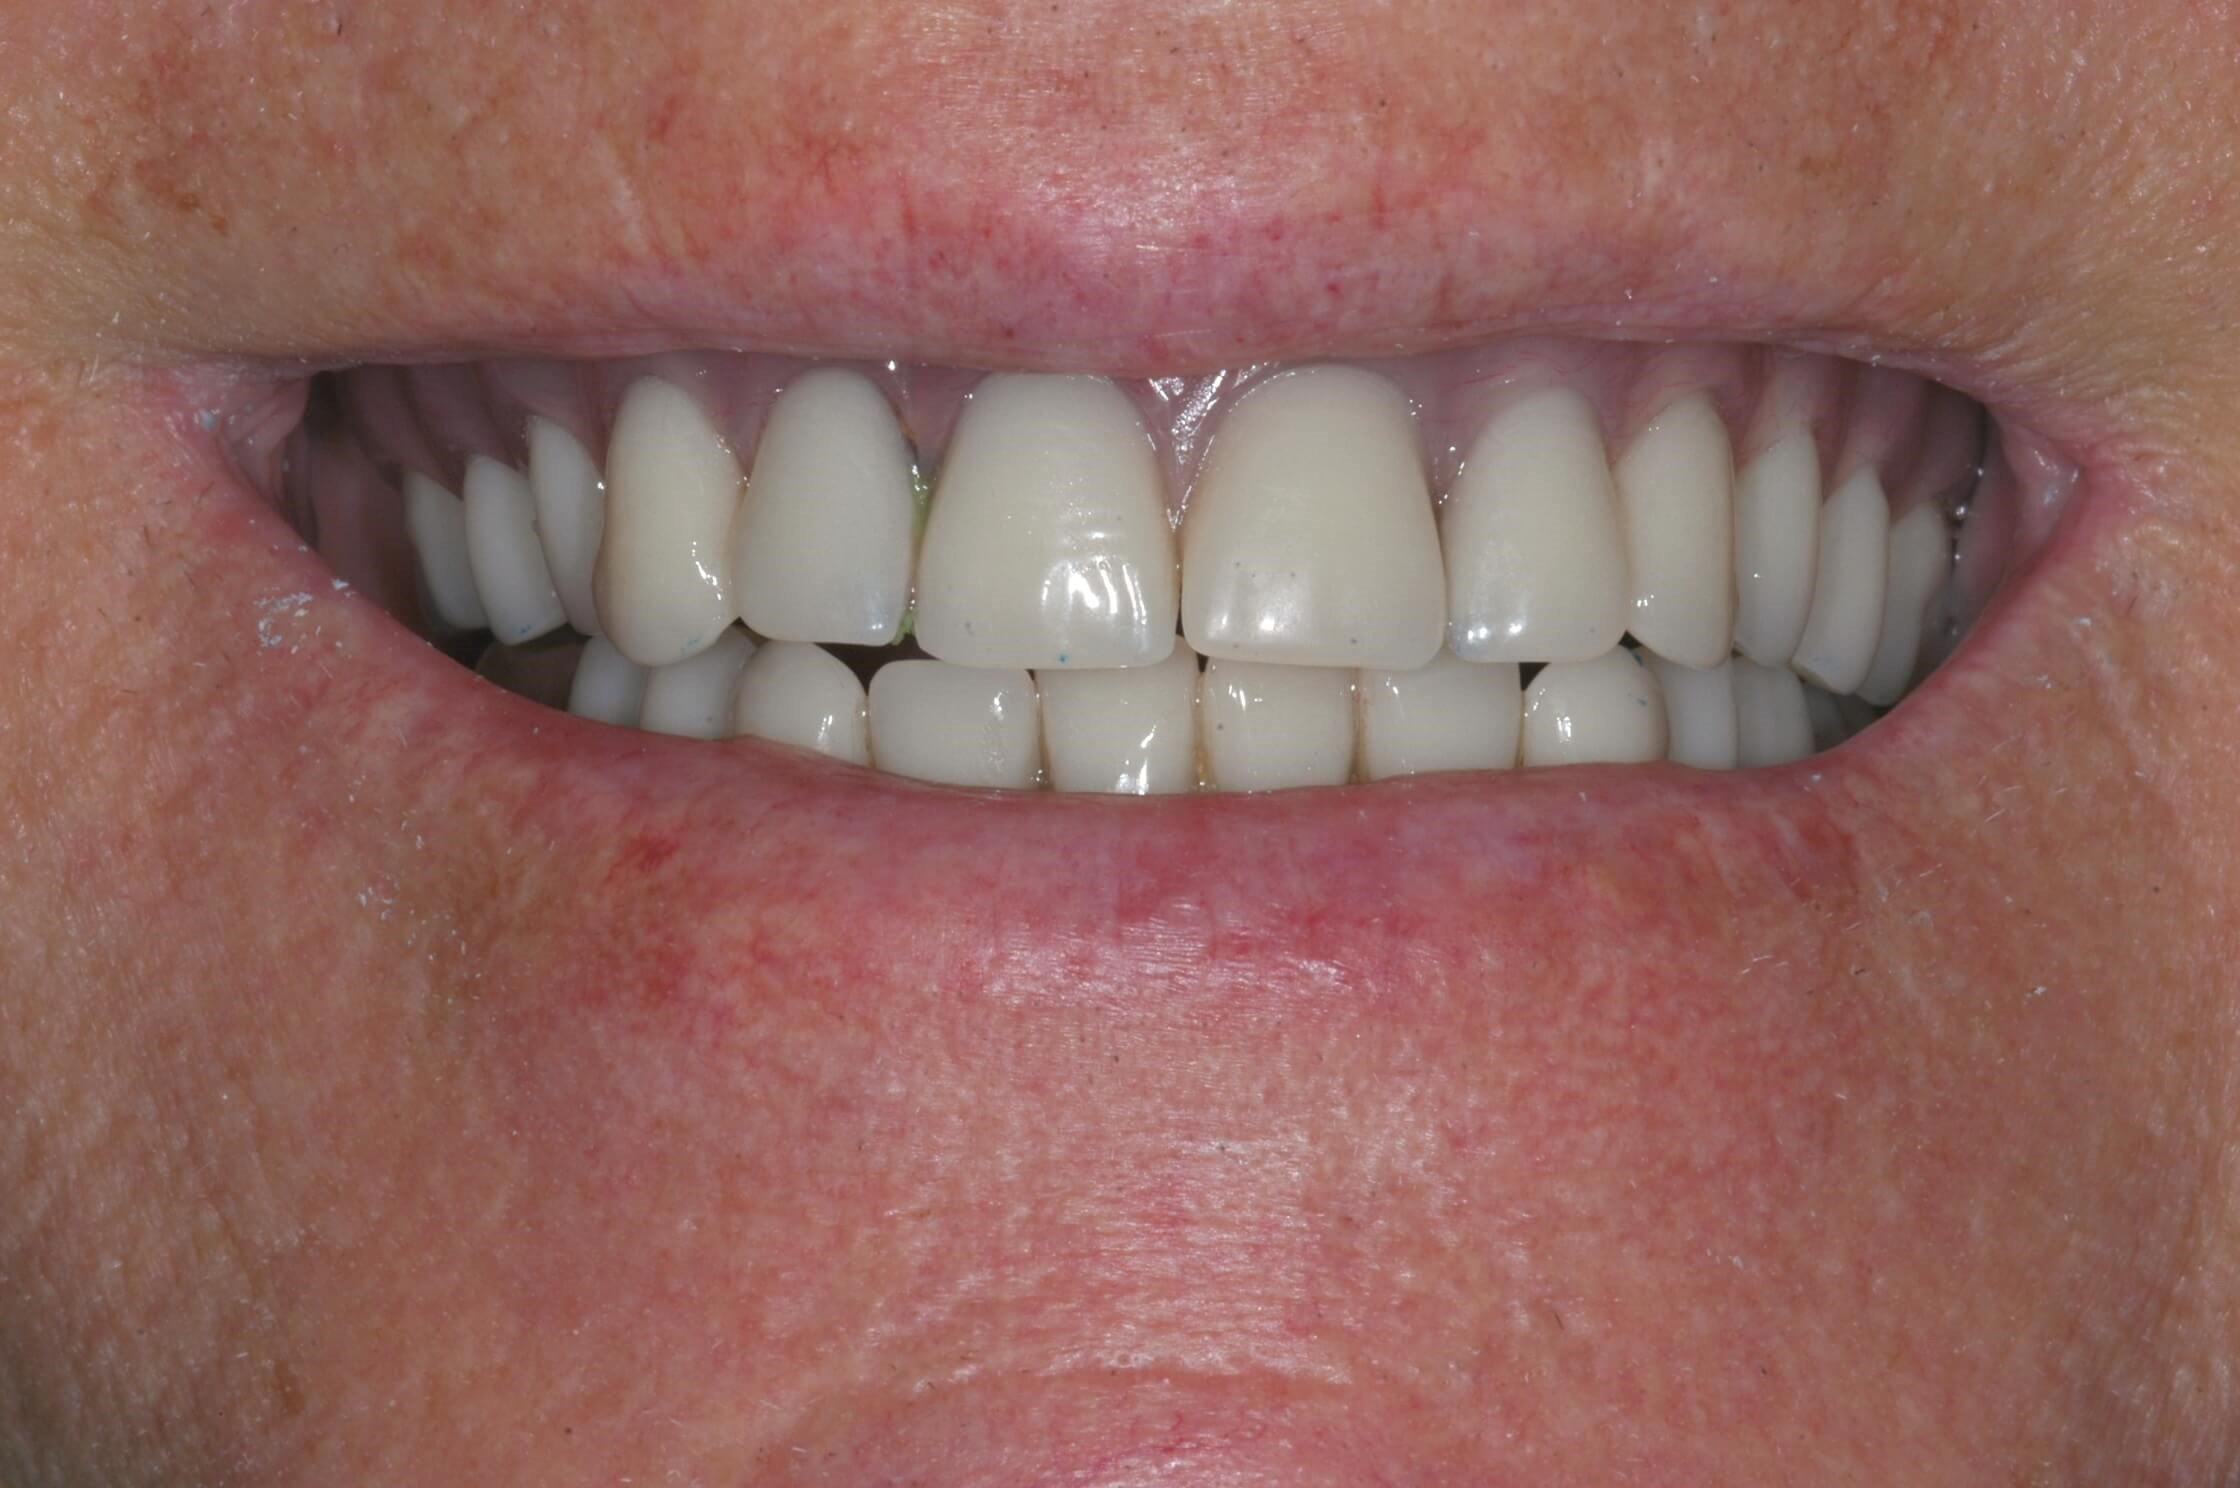 Retracted Smile 10 days after surgery